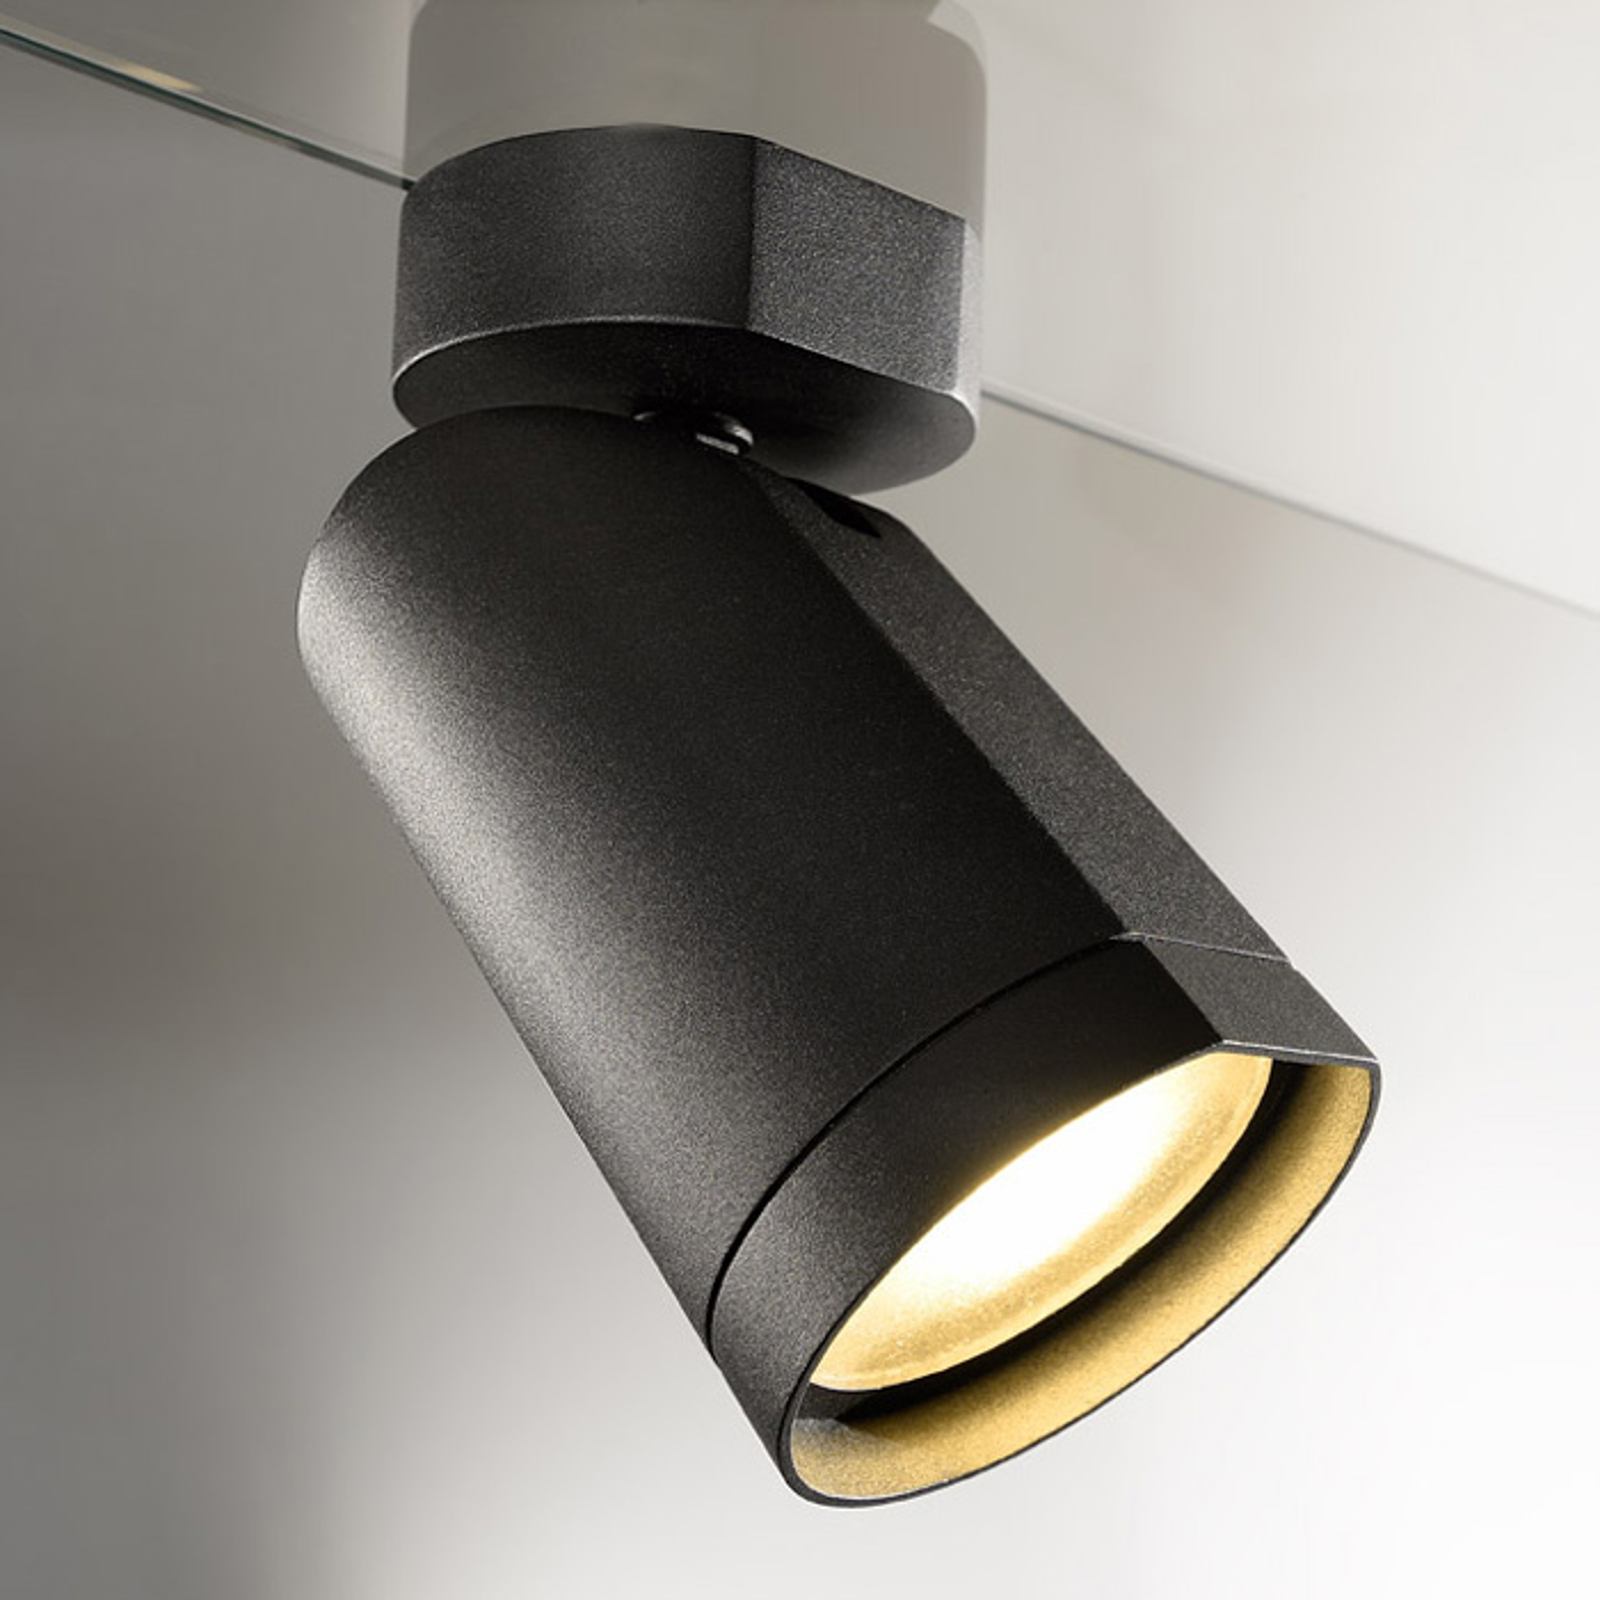 Acquista Lamp. design da soffitto a LED Bilas, 1 luce, nera